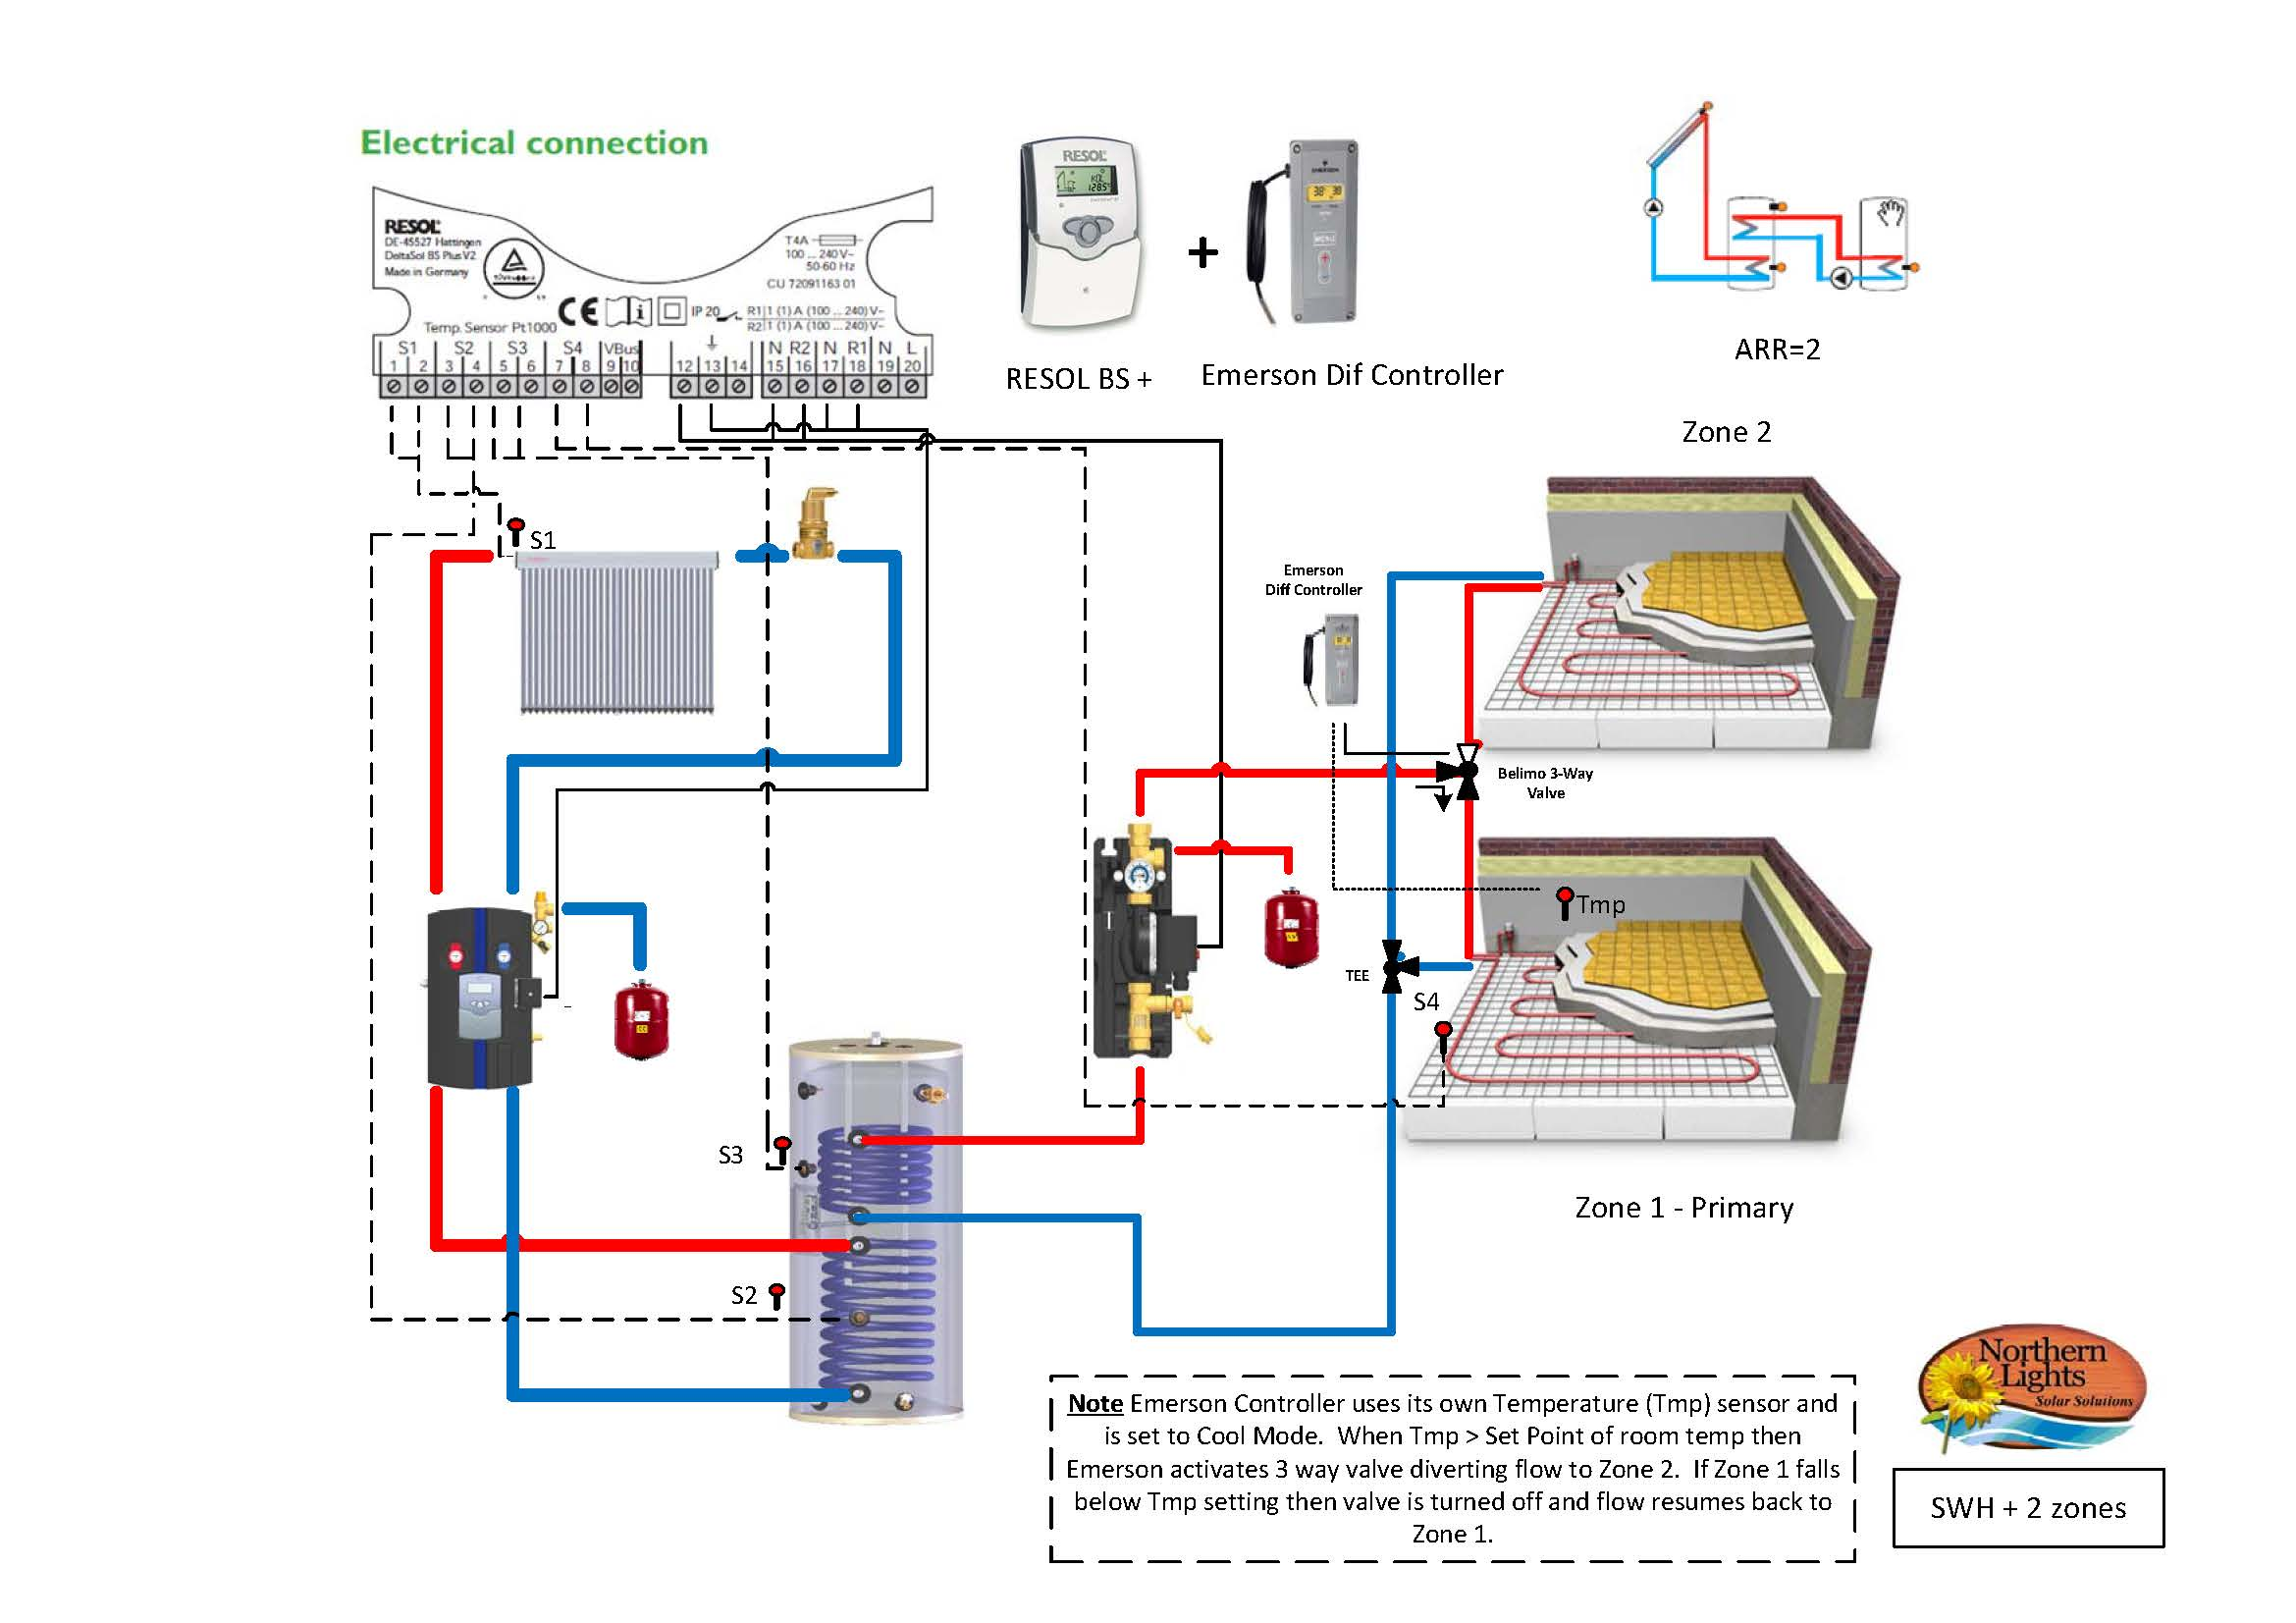 emerson visio stencils 28 images netzoom visio 174 stencils rh nasiliwet tk Wiring Multiple Recessed Lights Diagram Crestron Touch Panel Manual